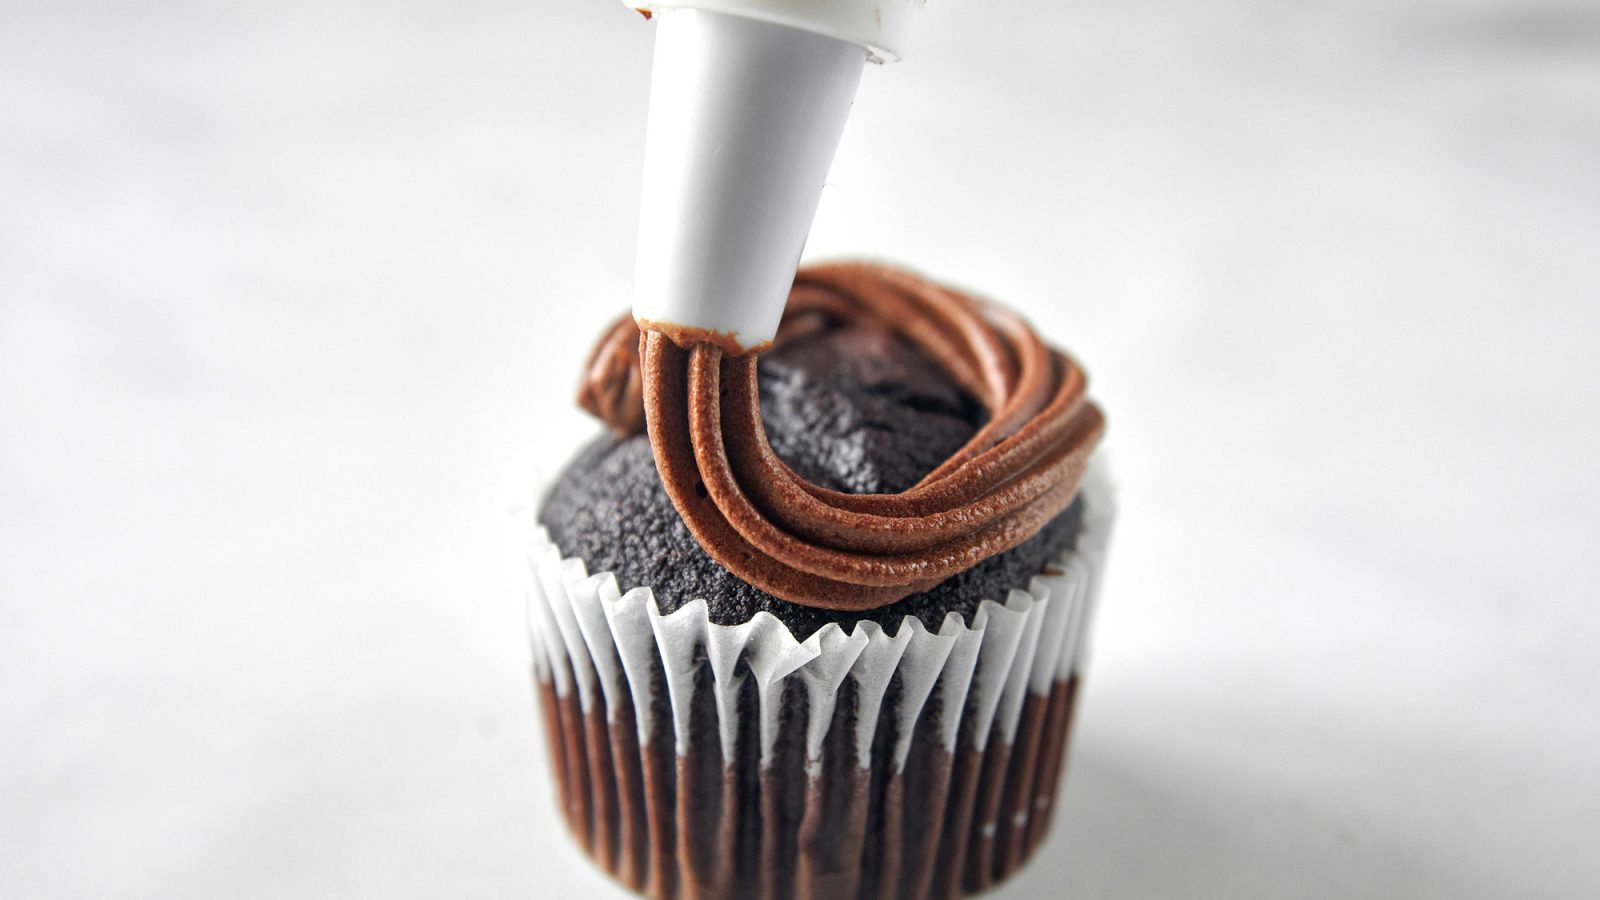 vegan chocolate frosting being piped onto a cupcake